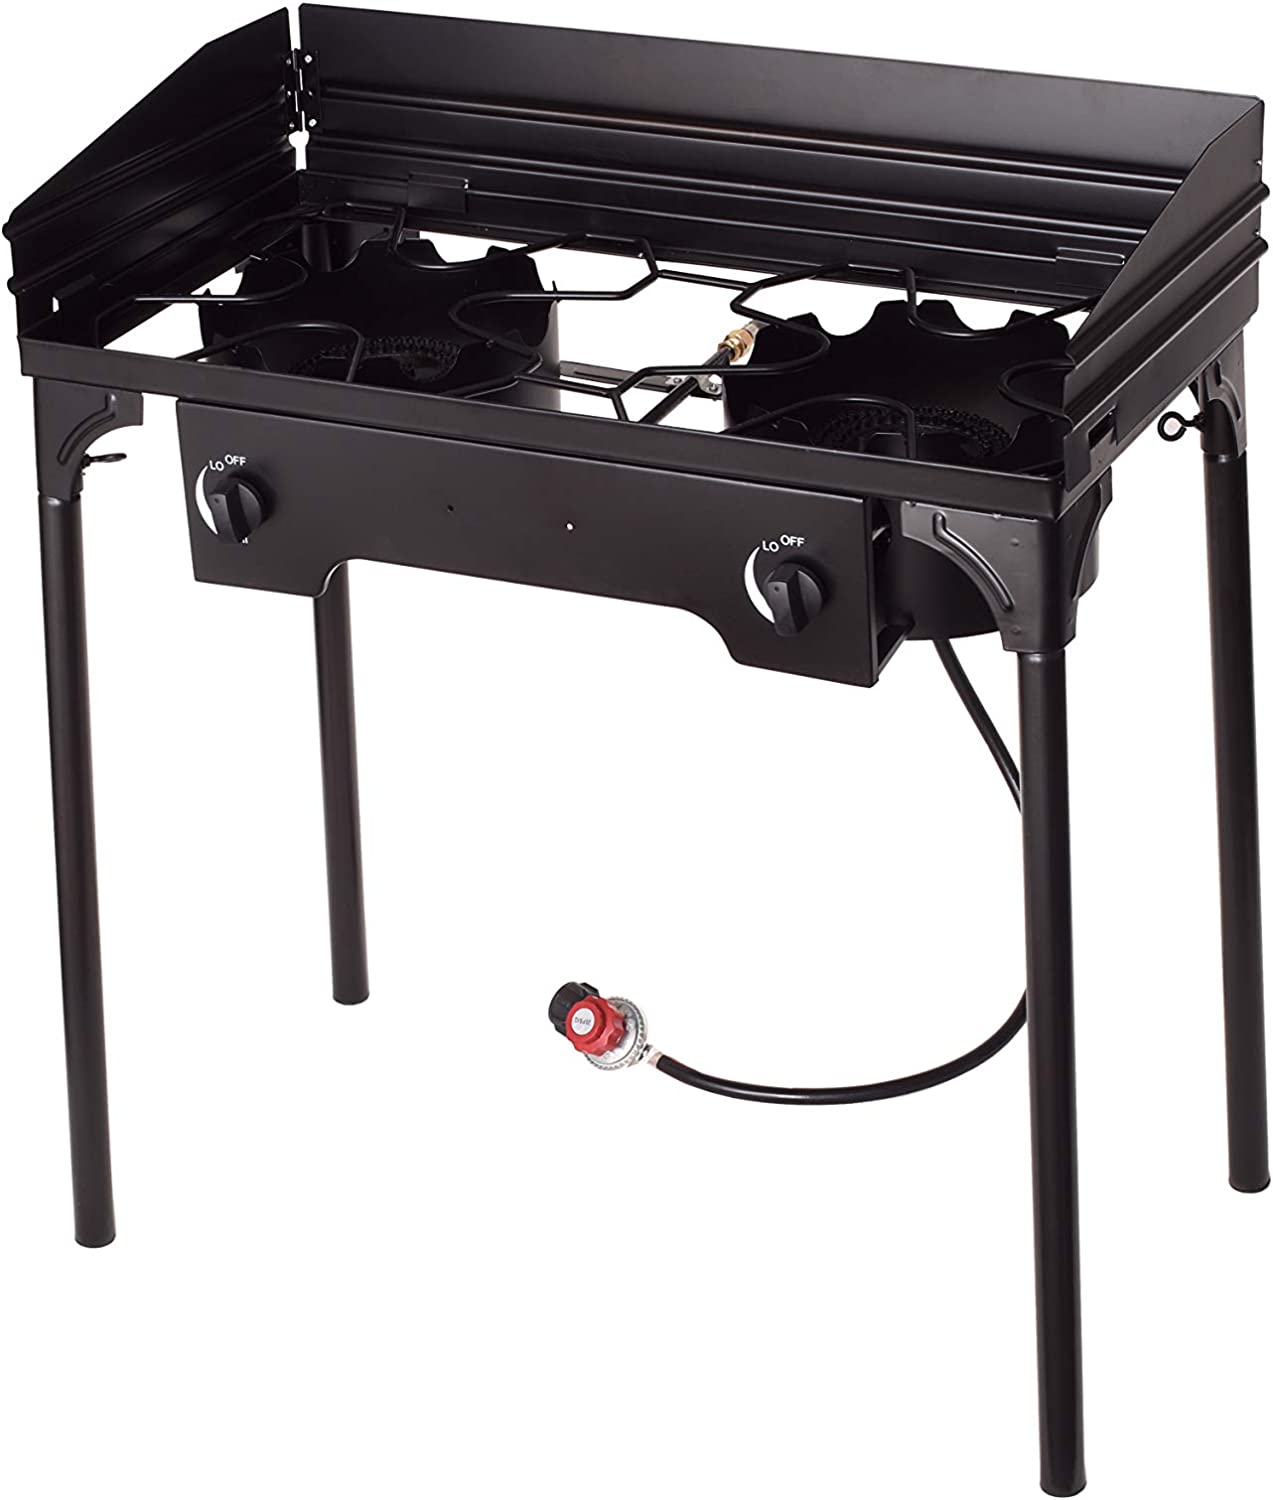 Flame King Outdoor Propane Double Dual Burner Stove Camp Cooker/Fryer Portable with Stand Great for Backyard Cooking, Home Brewing, Canning